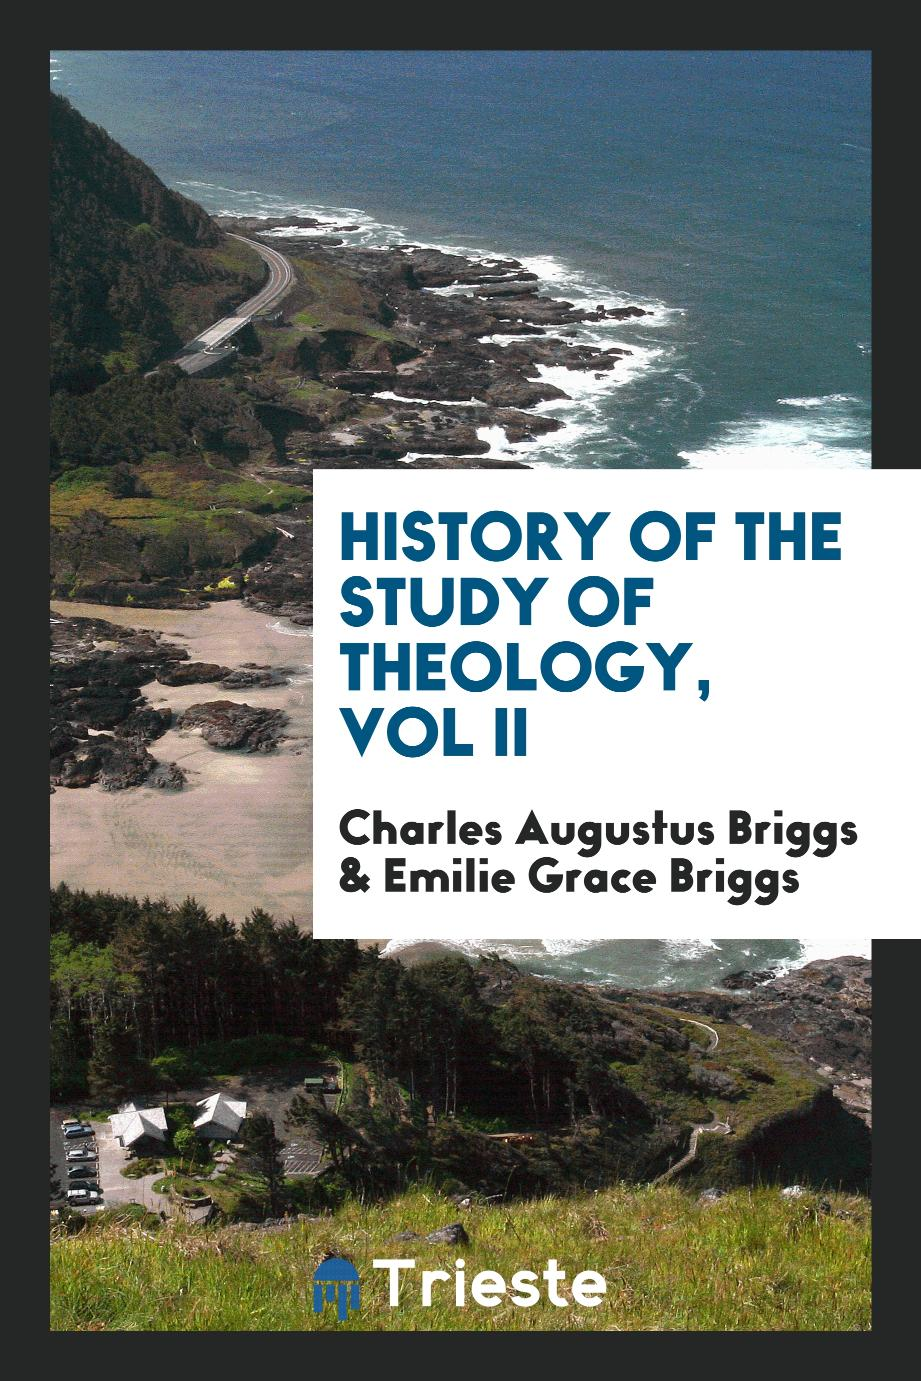 History of the study of theology, Vol II